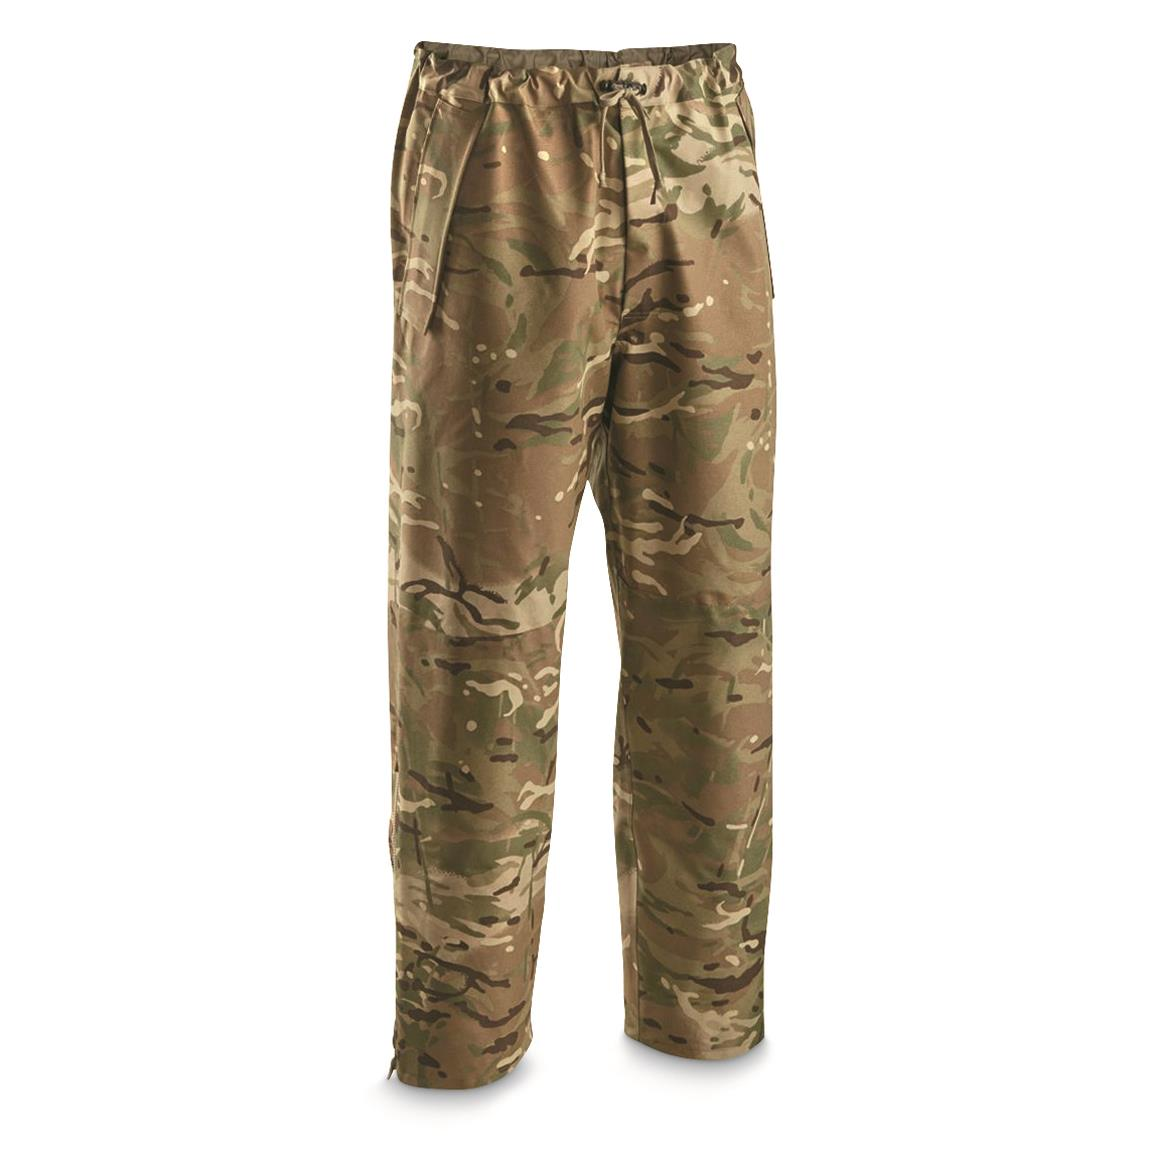 British Military Surplus Heavyweight GORE-TEX MTP Over Pants, New, Multi Terrain Pattern